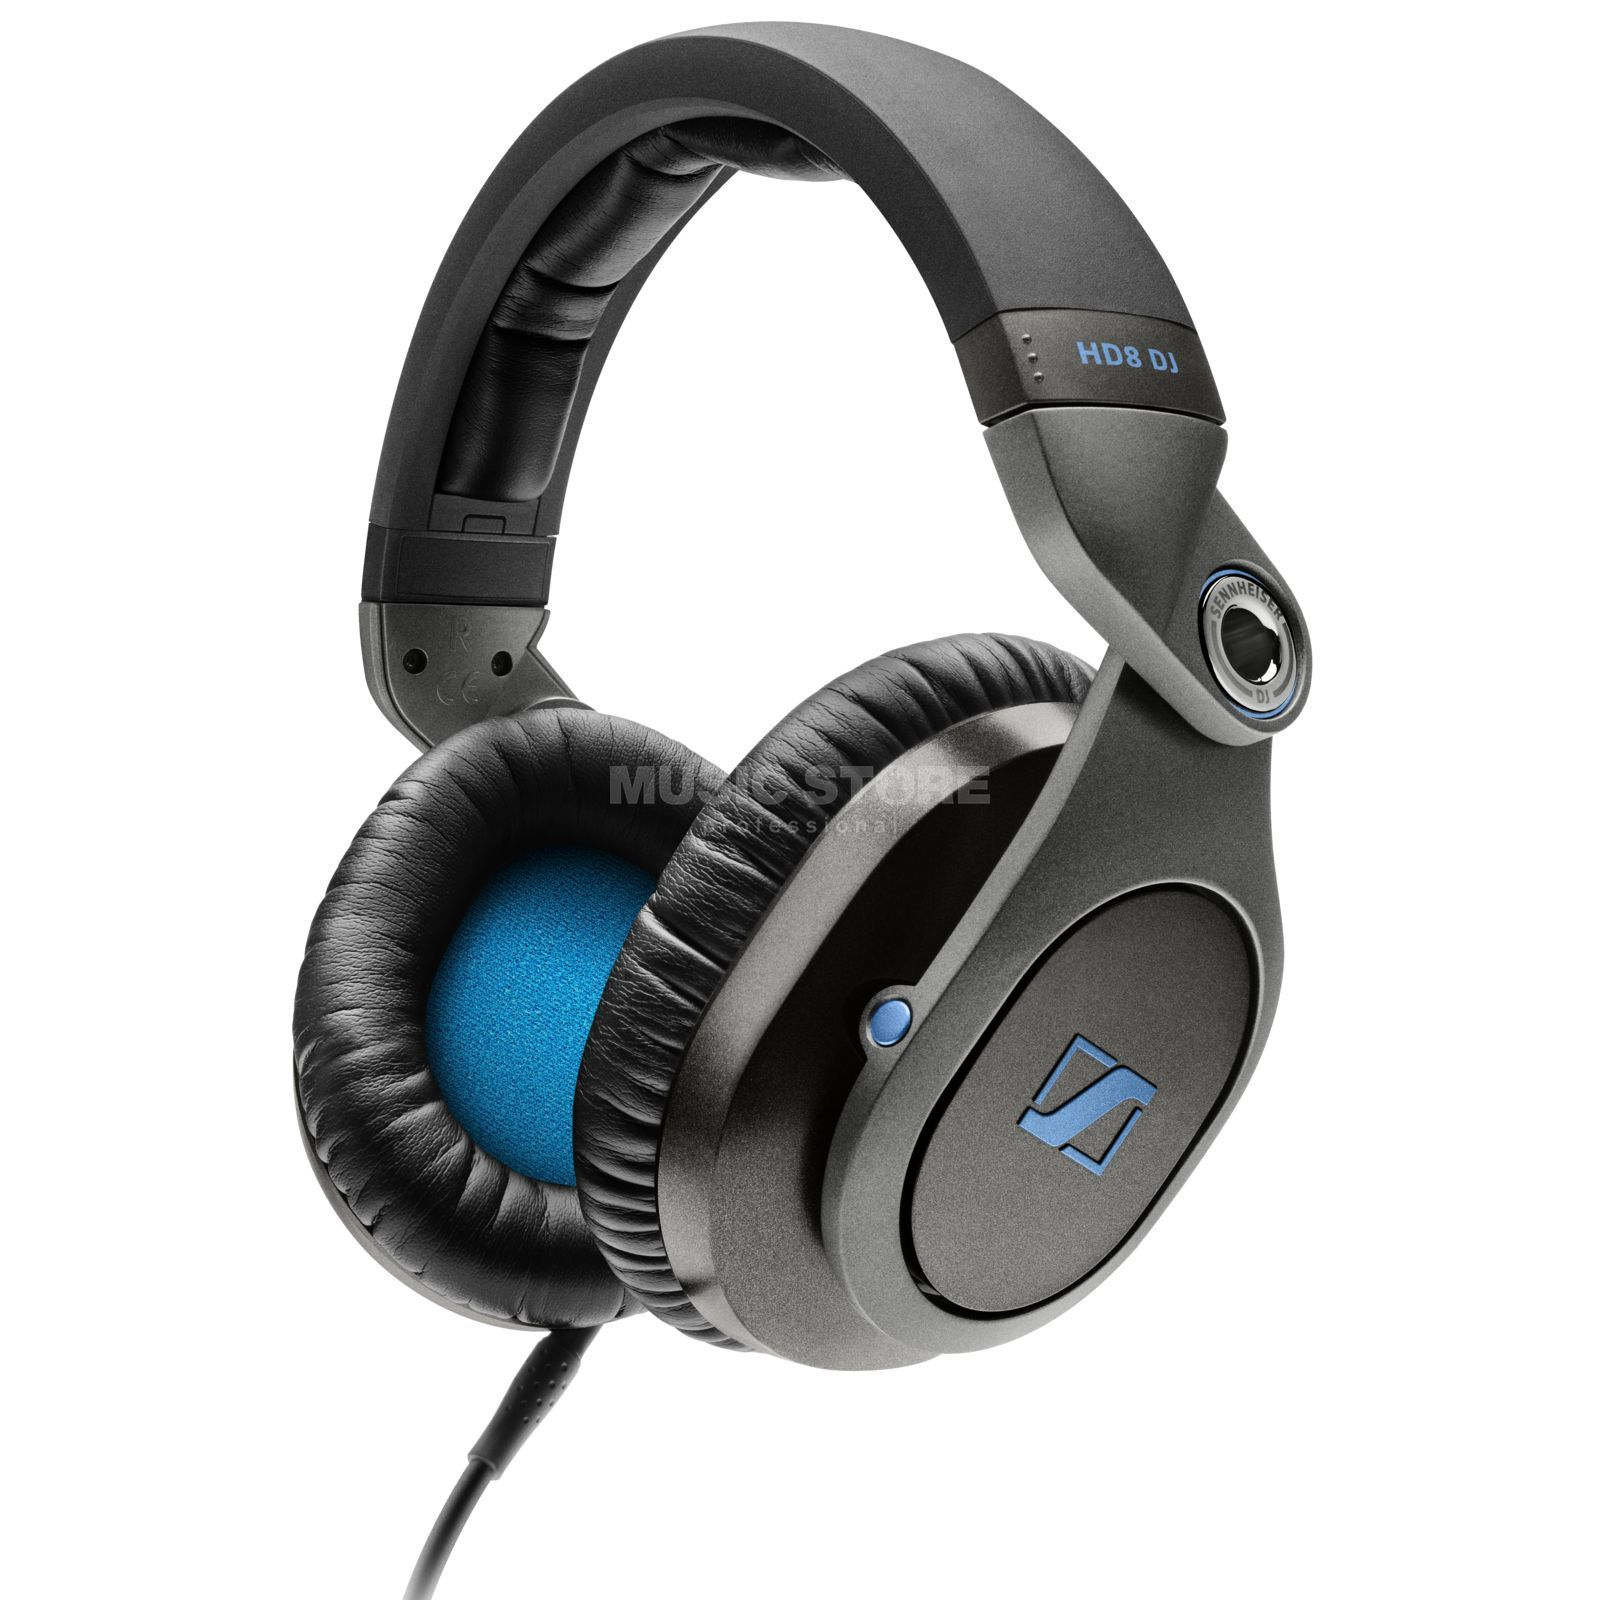 Sennheiser HD 8 DJ Headphones Closed 95 ohm, over-ear Immagine prodotto